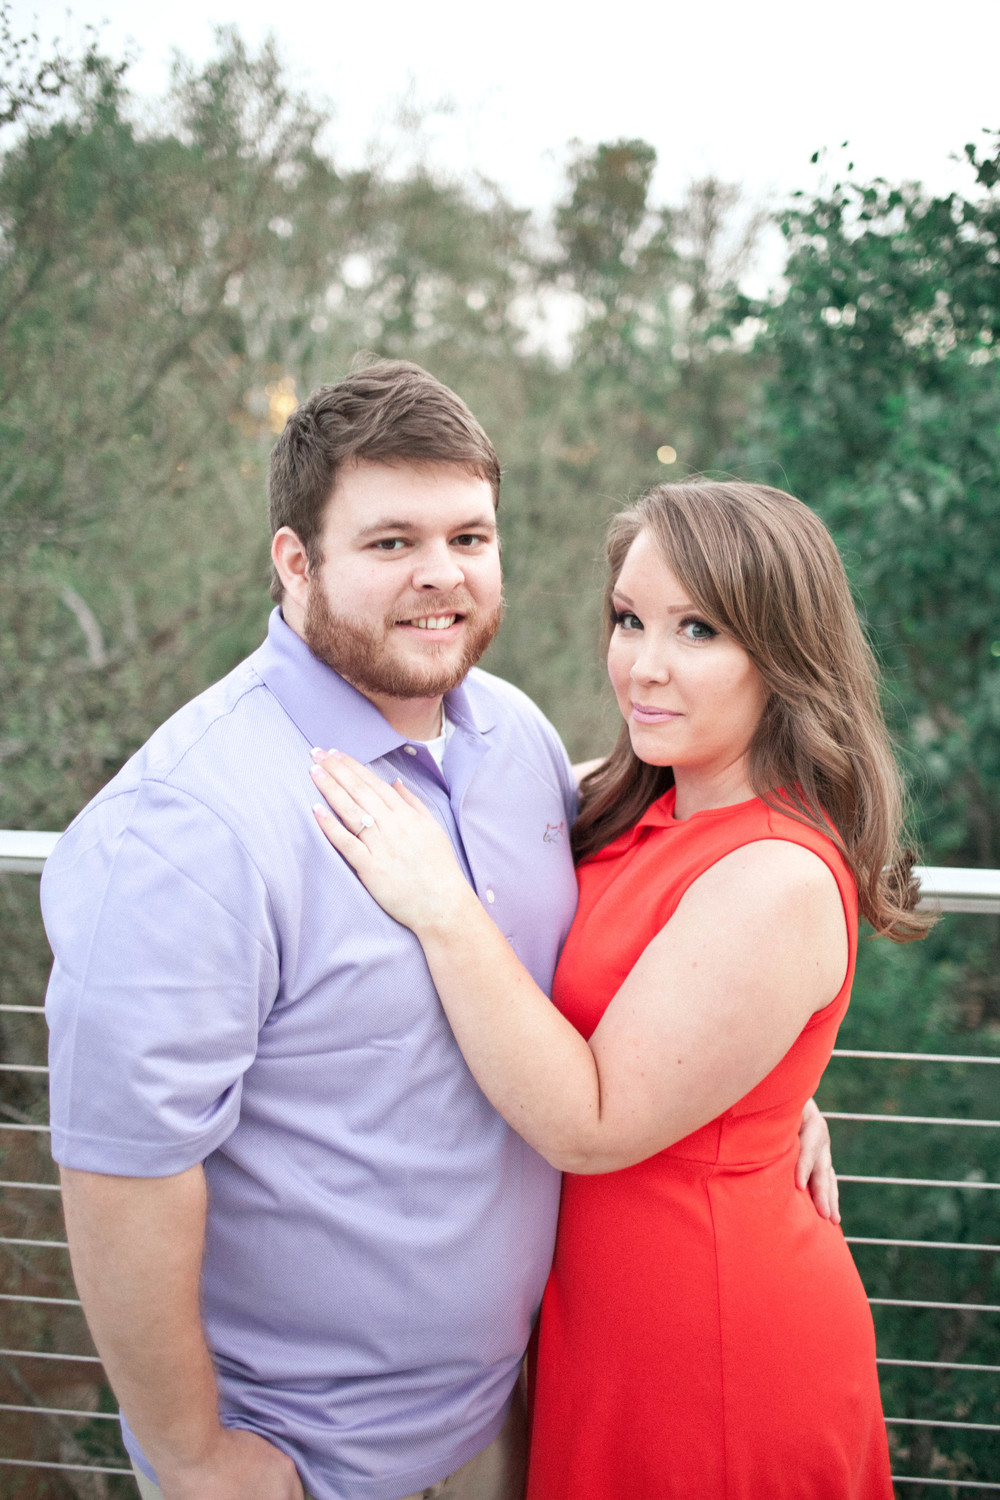 zach_gabbie_engagement_poured_out_photography-62.jpg